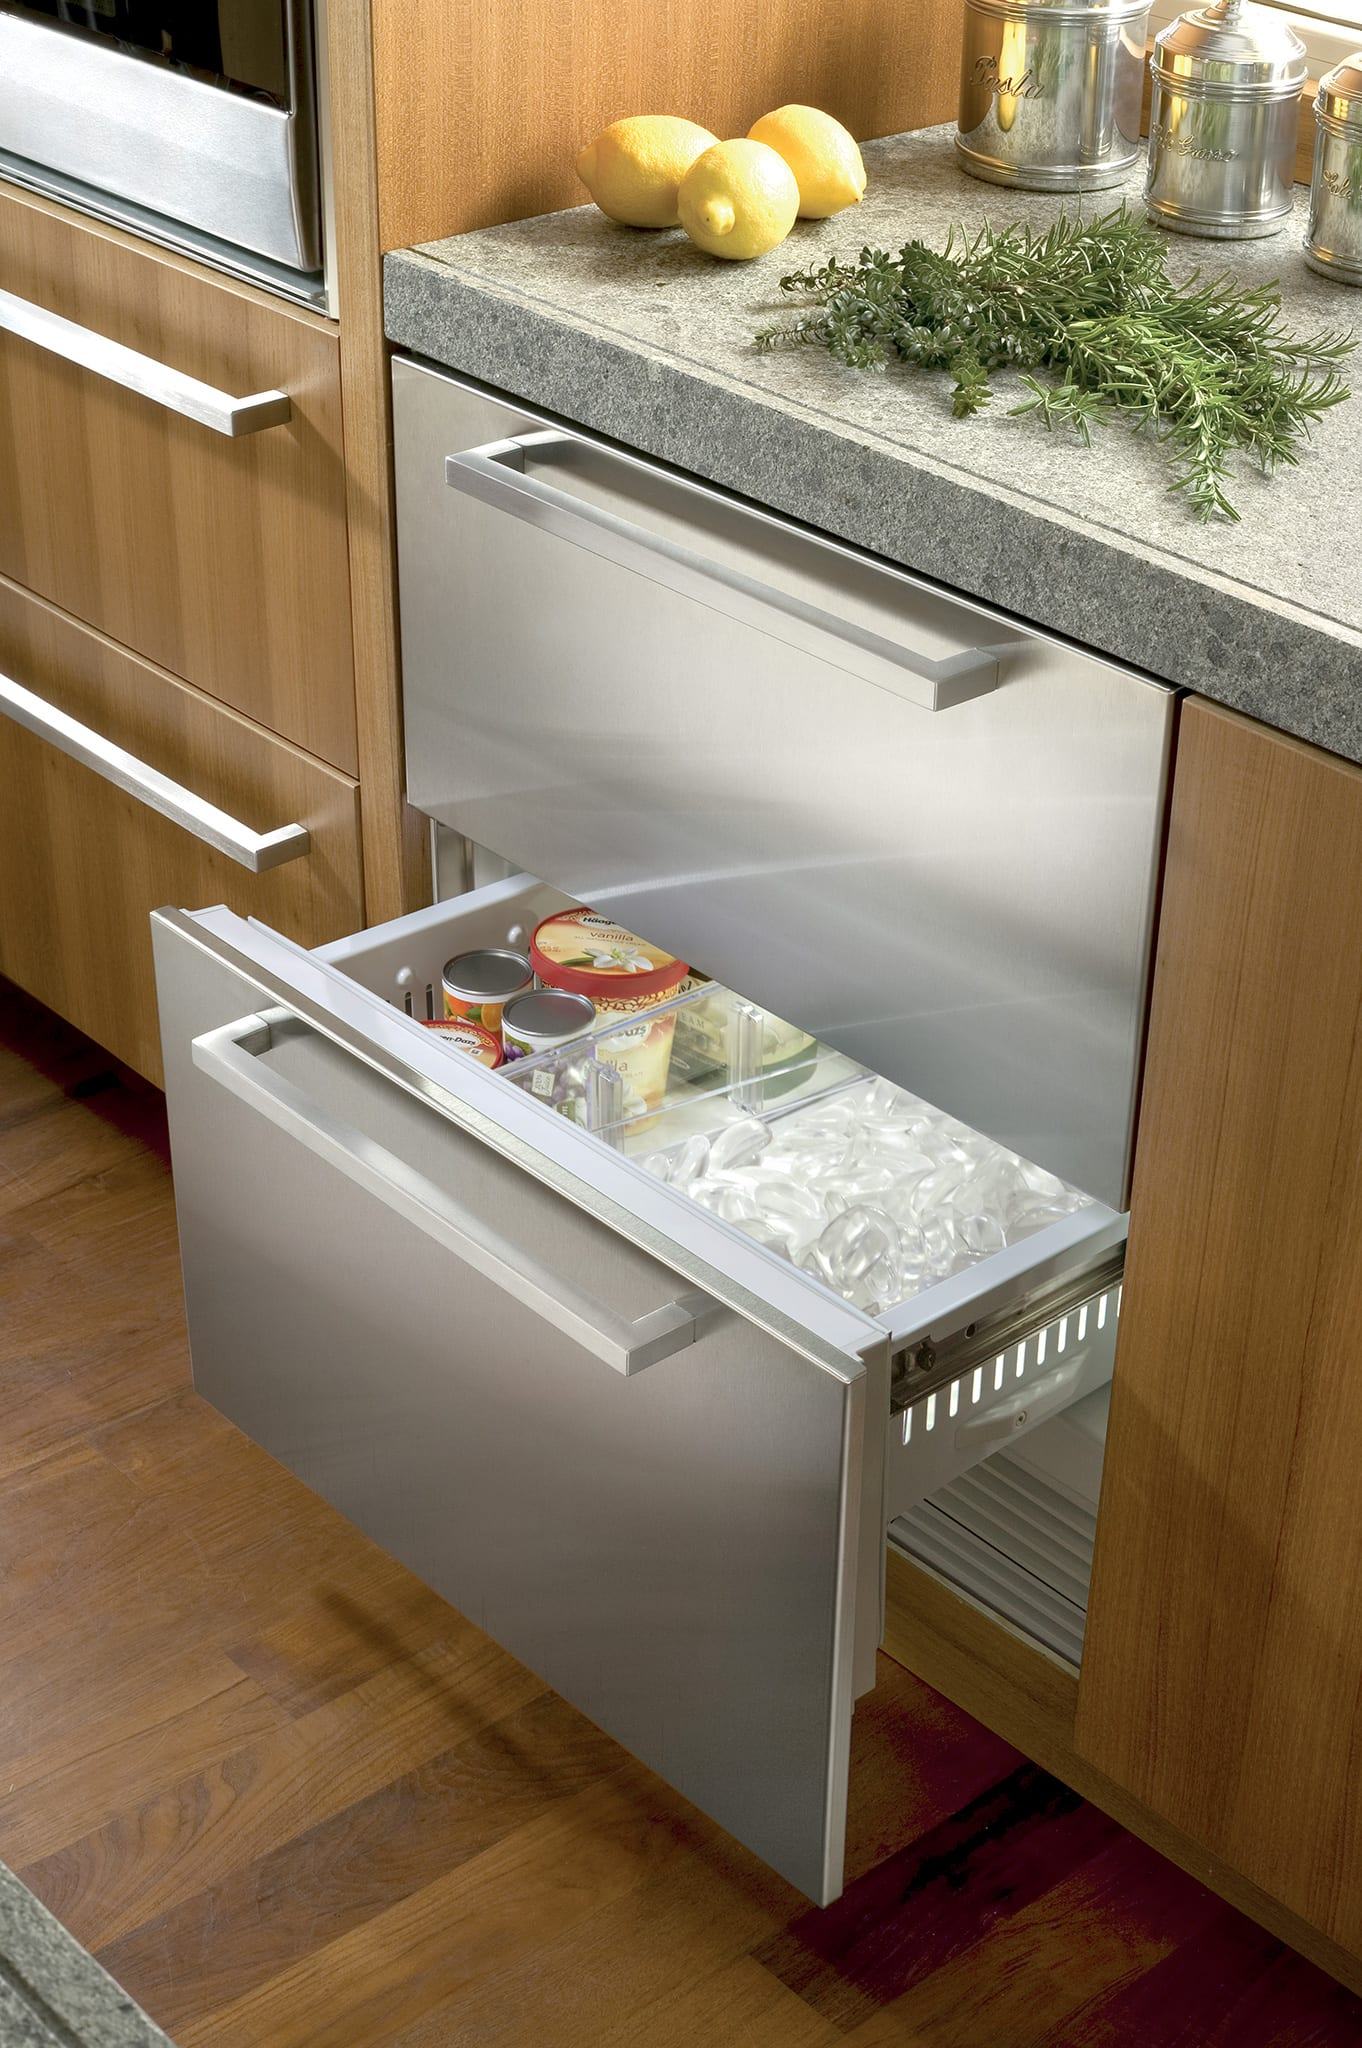 30 freezer drawers with ice maker panel ready